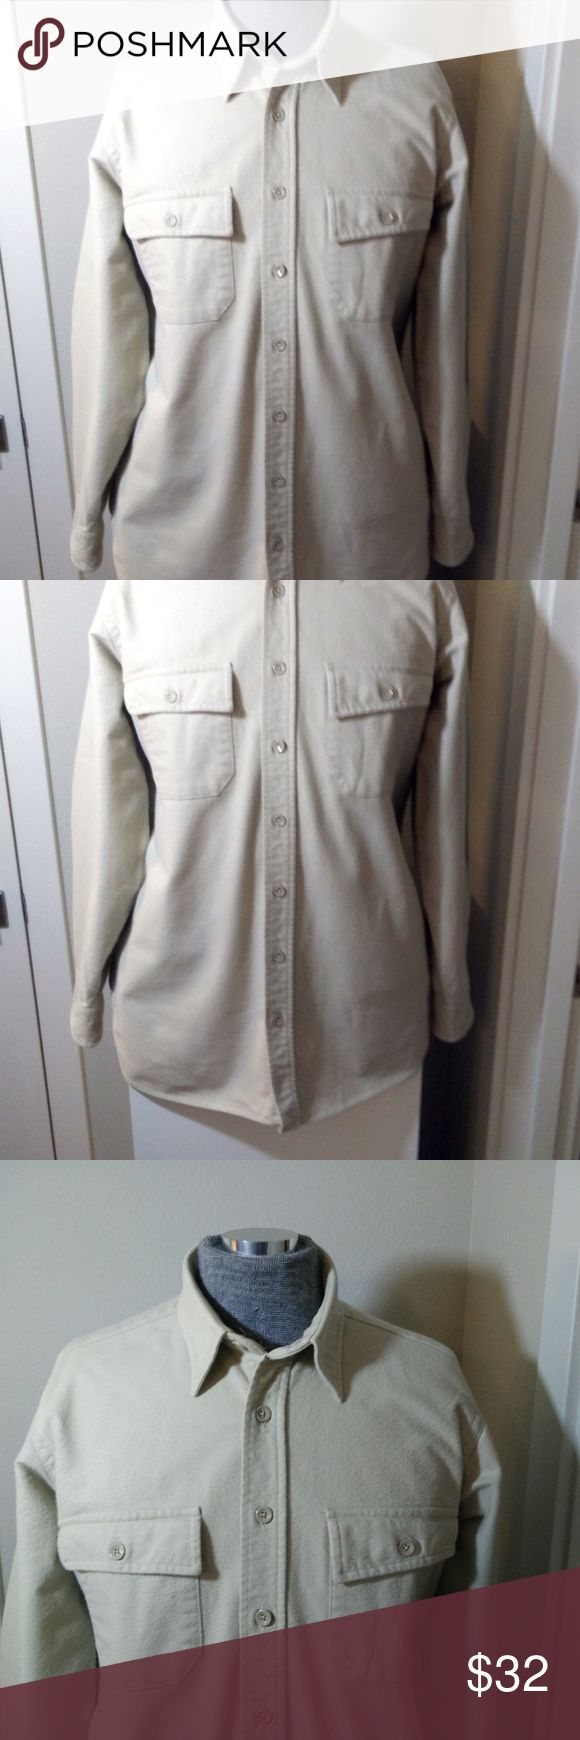 """L.L. Bean Flannel Chamois Shirt Sz Men's Tall 16 Vintage L.L. Bean Flannel Chamois Shirt made USA Size Tall (16) - Beautiful vintage shirt -  100% Cotton -  Beige/Oatmeal Color-  very nice quality and in GOOD overall condition... (ref#2264)  Please check measurements for a good fit.  (Actual Measurements are taken to the best of our ability and are approximate)     Measurements:  Pit to Pit – 24""""  Sleeve (from shoulder Seam) – 24""""  Shoulder (Seam to Seam) - 19.5""""  Length – 32"""" L.L. Bean…"""